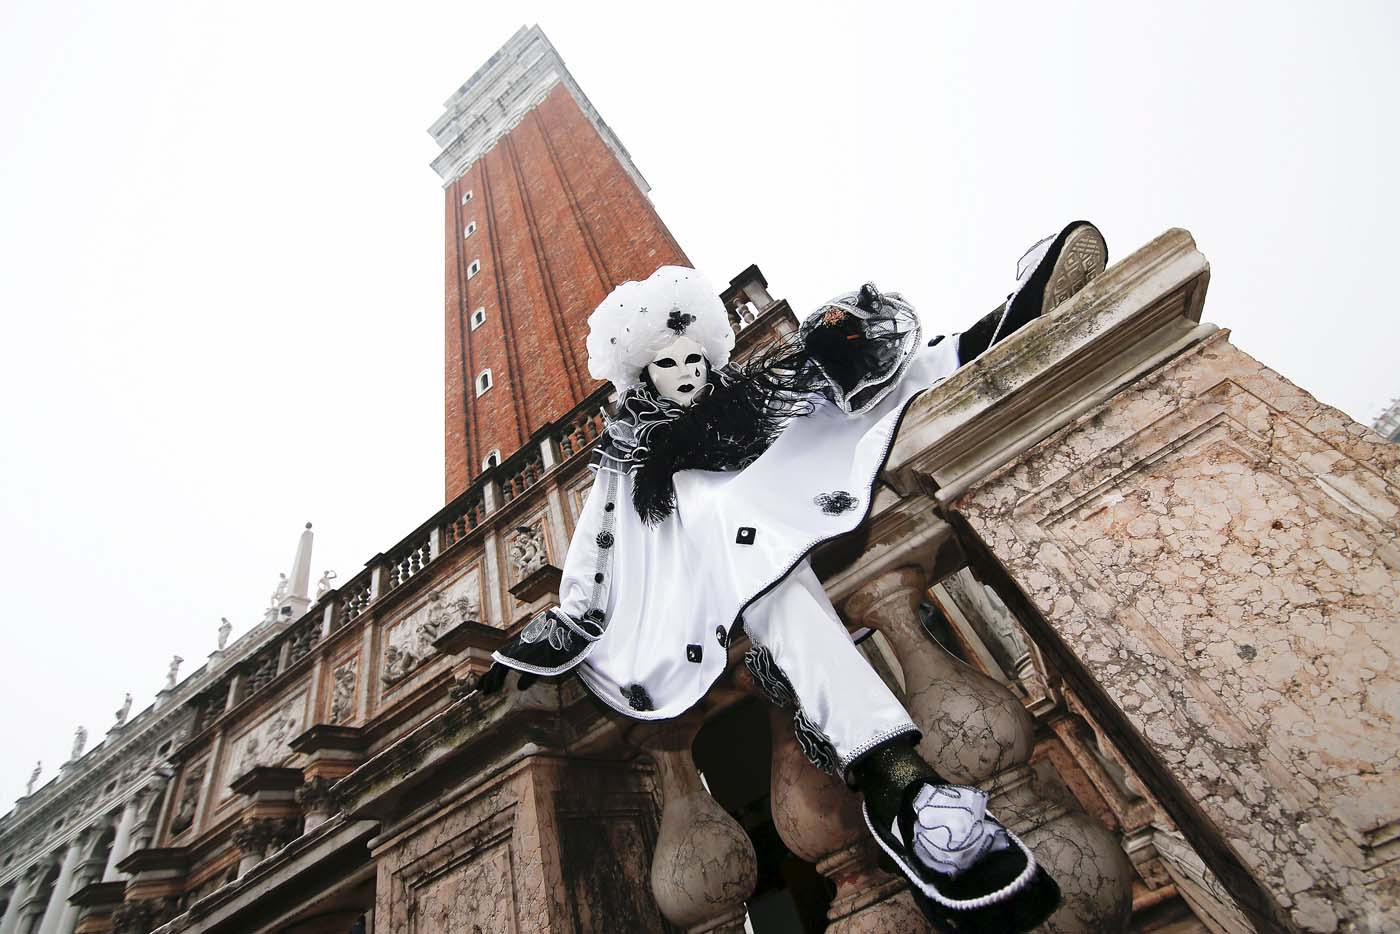 A masked reveller (R) poses in San Marco Piazza during the Venice Carnival, January 30, 2016. REUTERS/Alessandro Bianchi